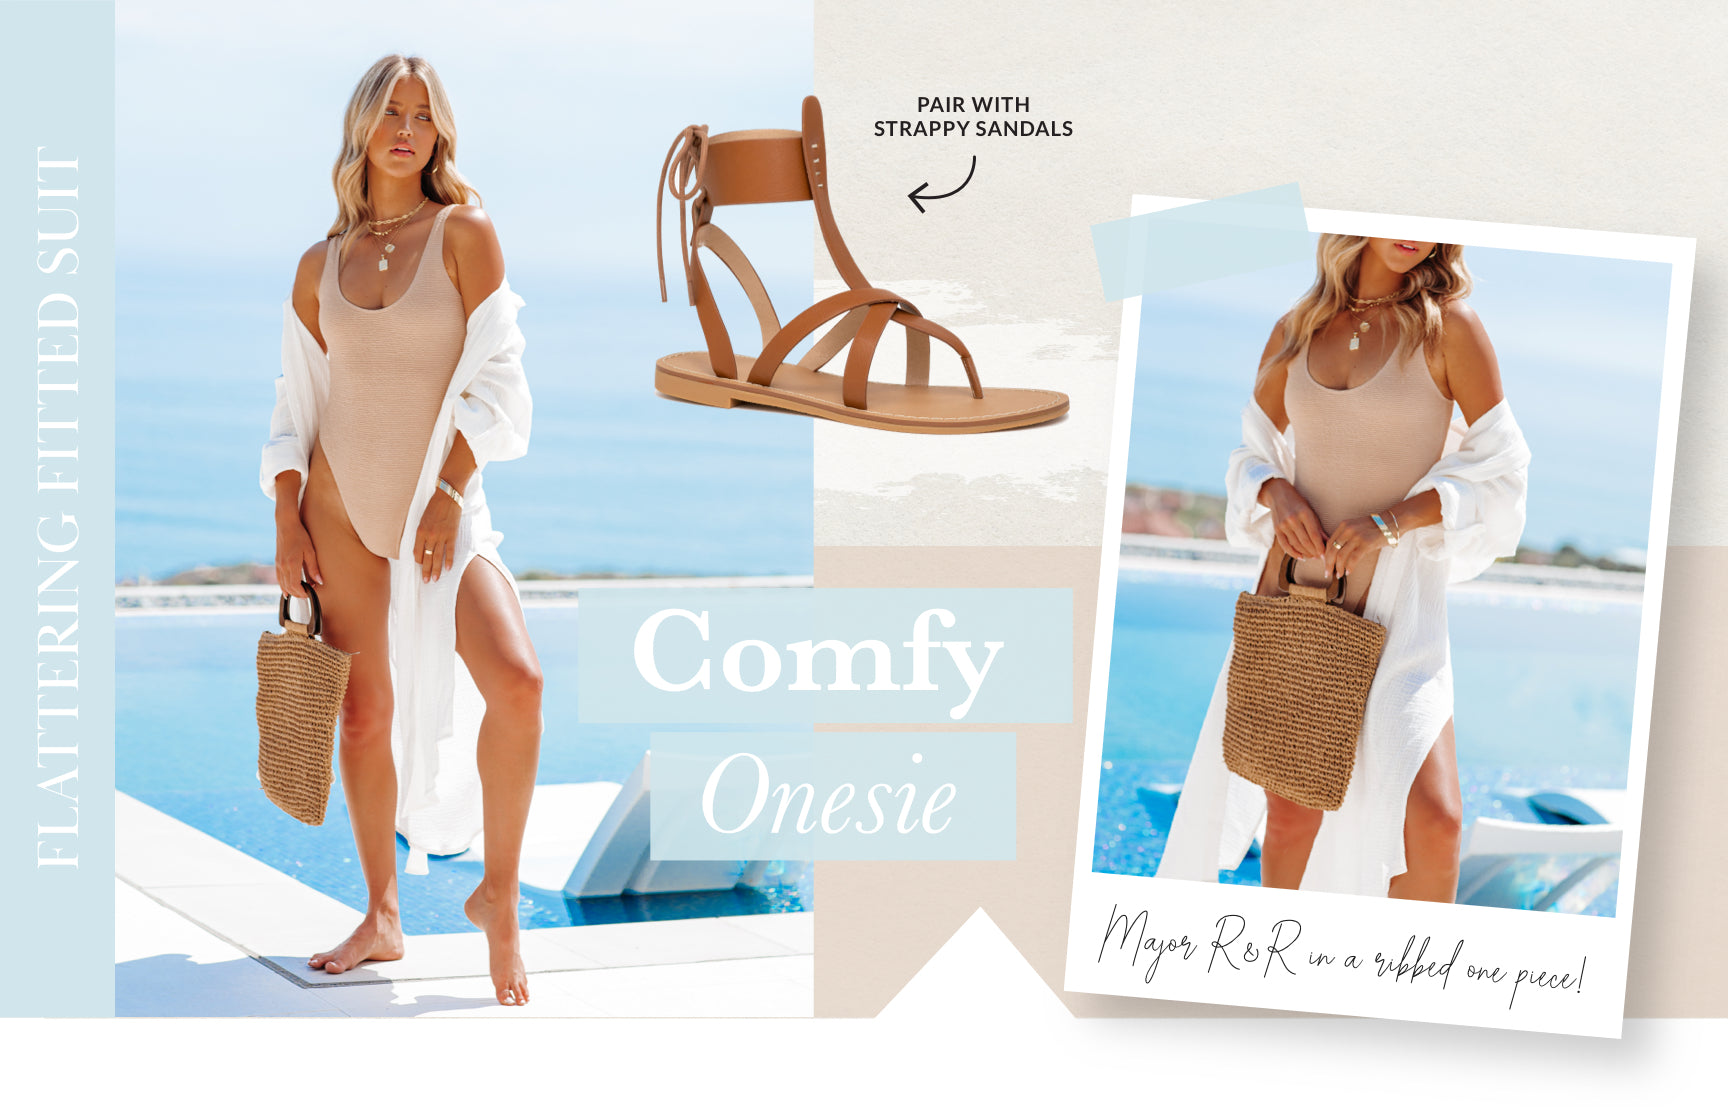 Enjoy some major R&R in a ribbed one piece! This fitted suit will flatter all the way from Day 1 of your trip to Day 5 when you've indulged on one too many sugary Aperol Spritzes. Bye bye bloat! This swimsuit earns bonus points when it mimics a bodysuit paired with a satin skirt and lace up heels. Shop Swim